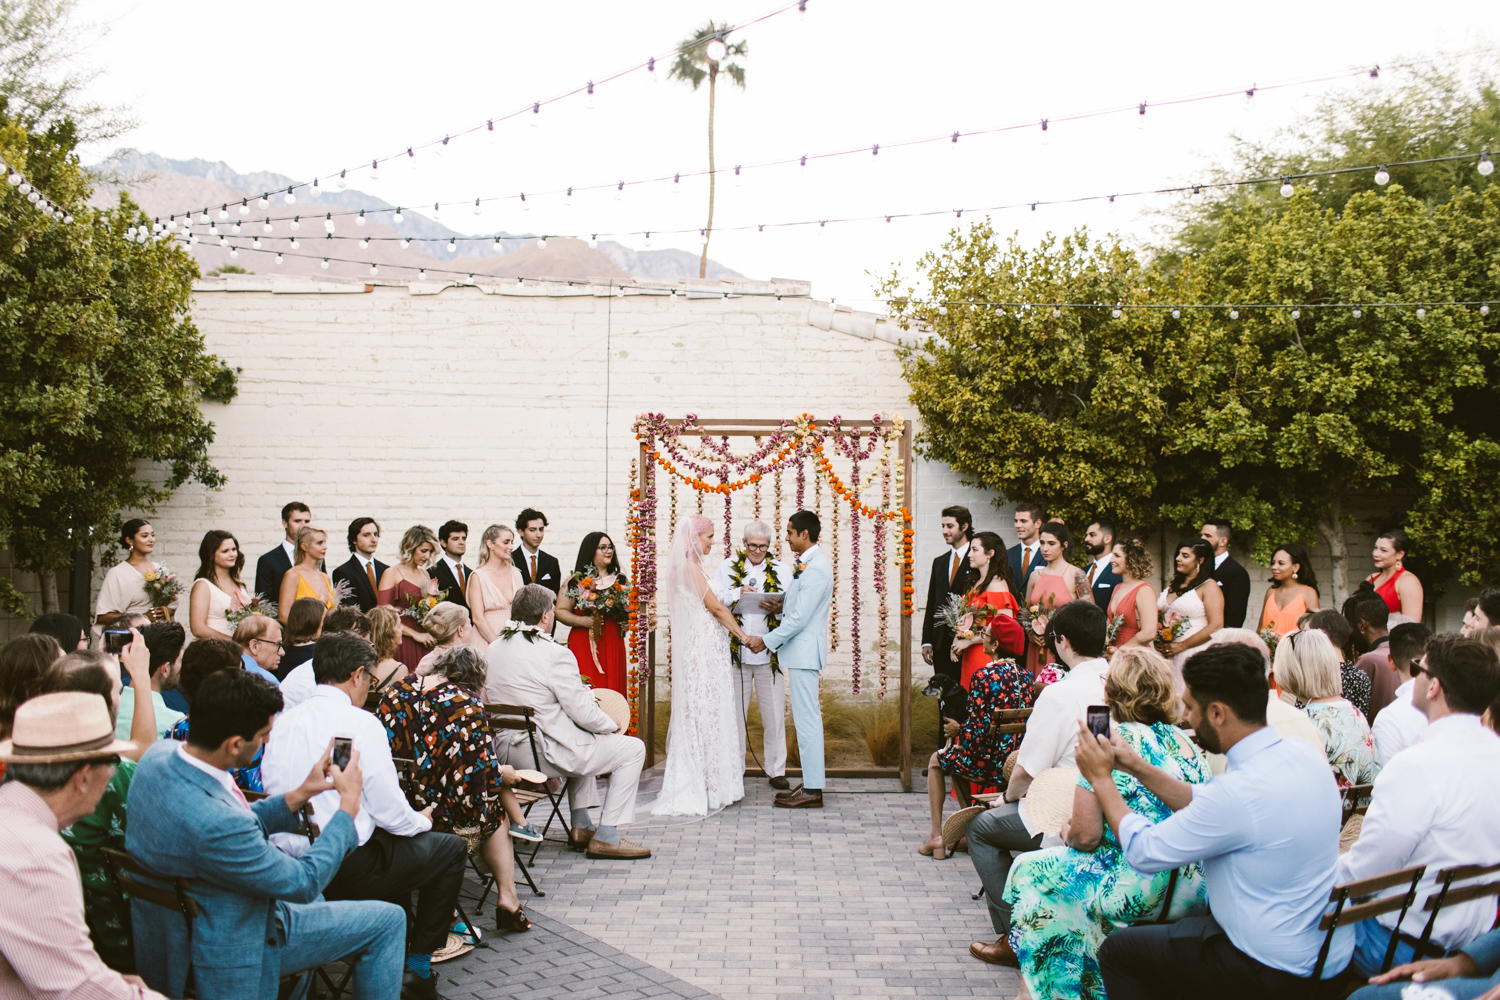 westlund-photography-palm-springs-wedding-39.jpg